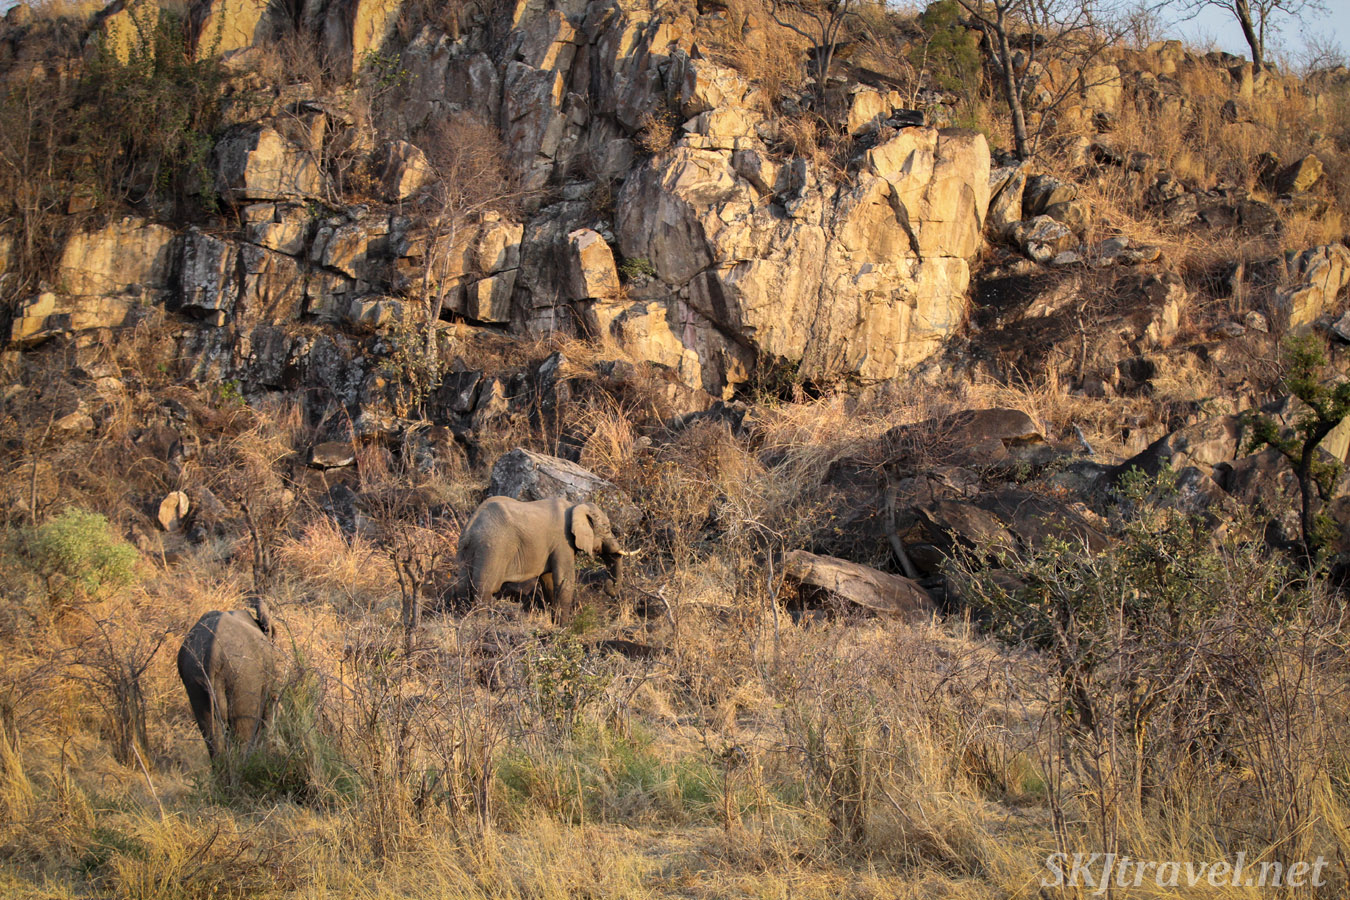 Elephants in the rocky, rugged landscape of Savuti, Botswana.